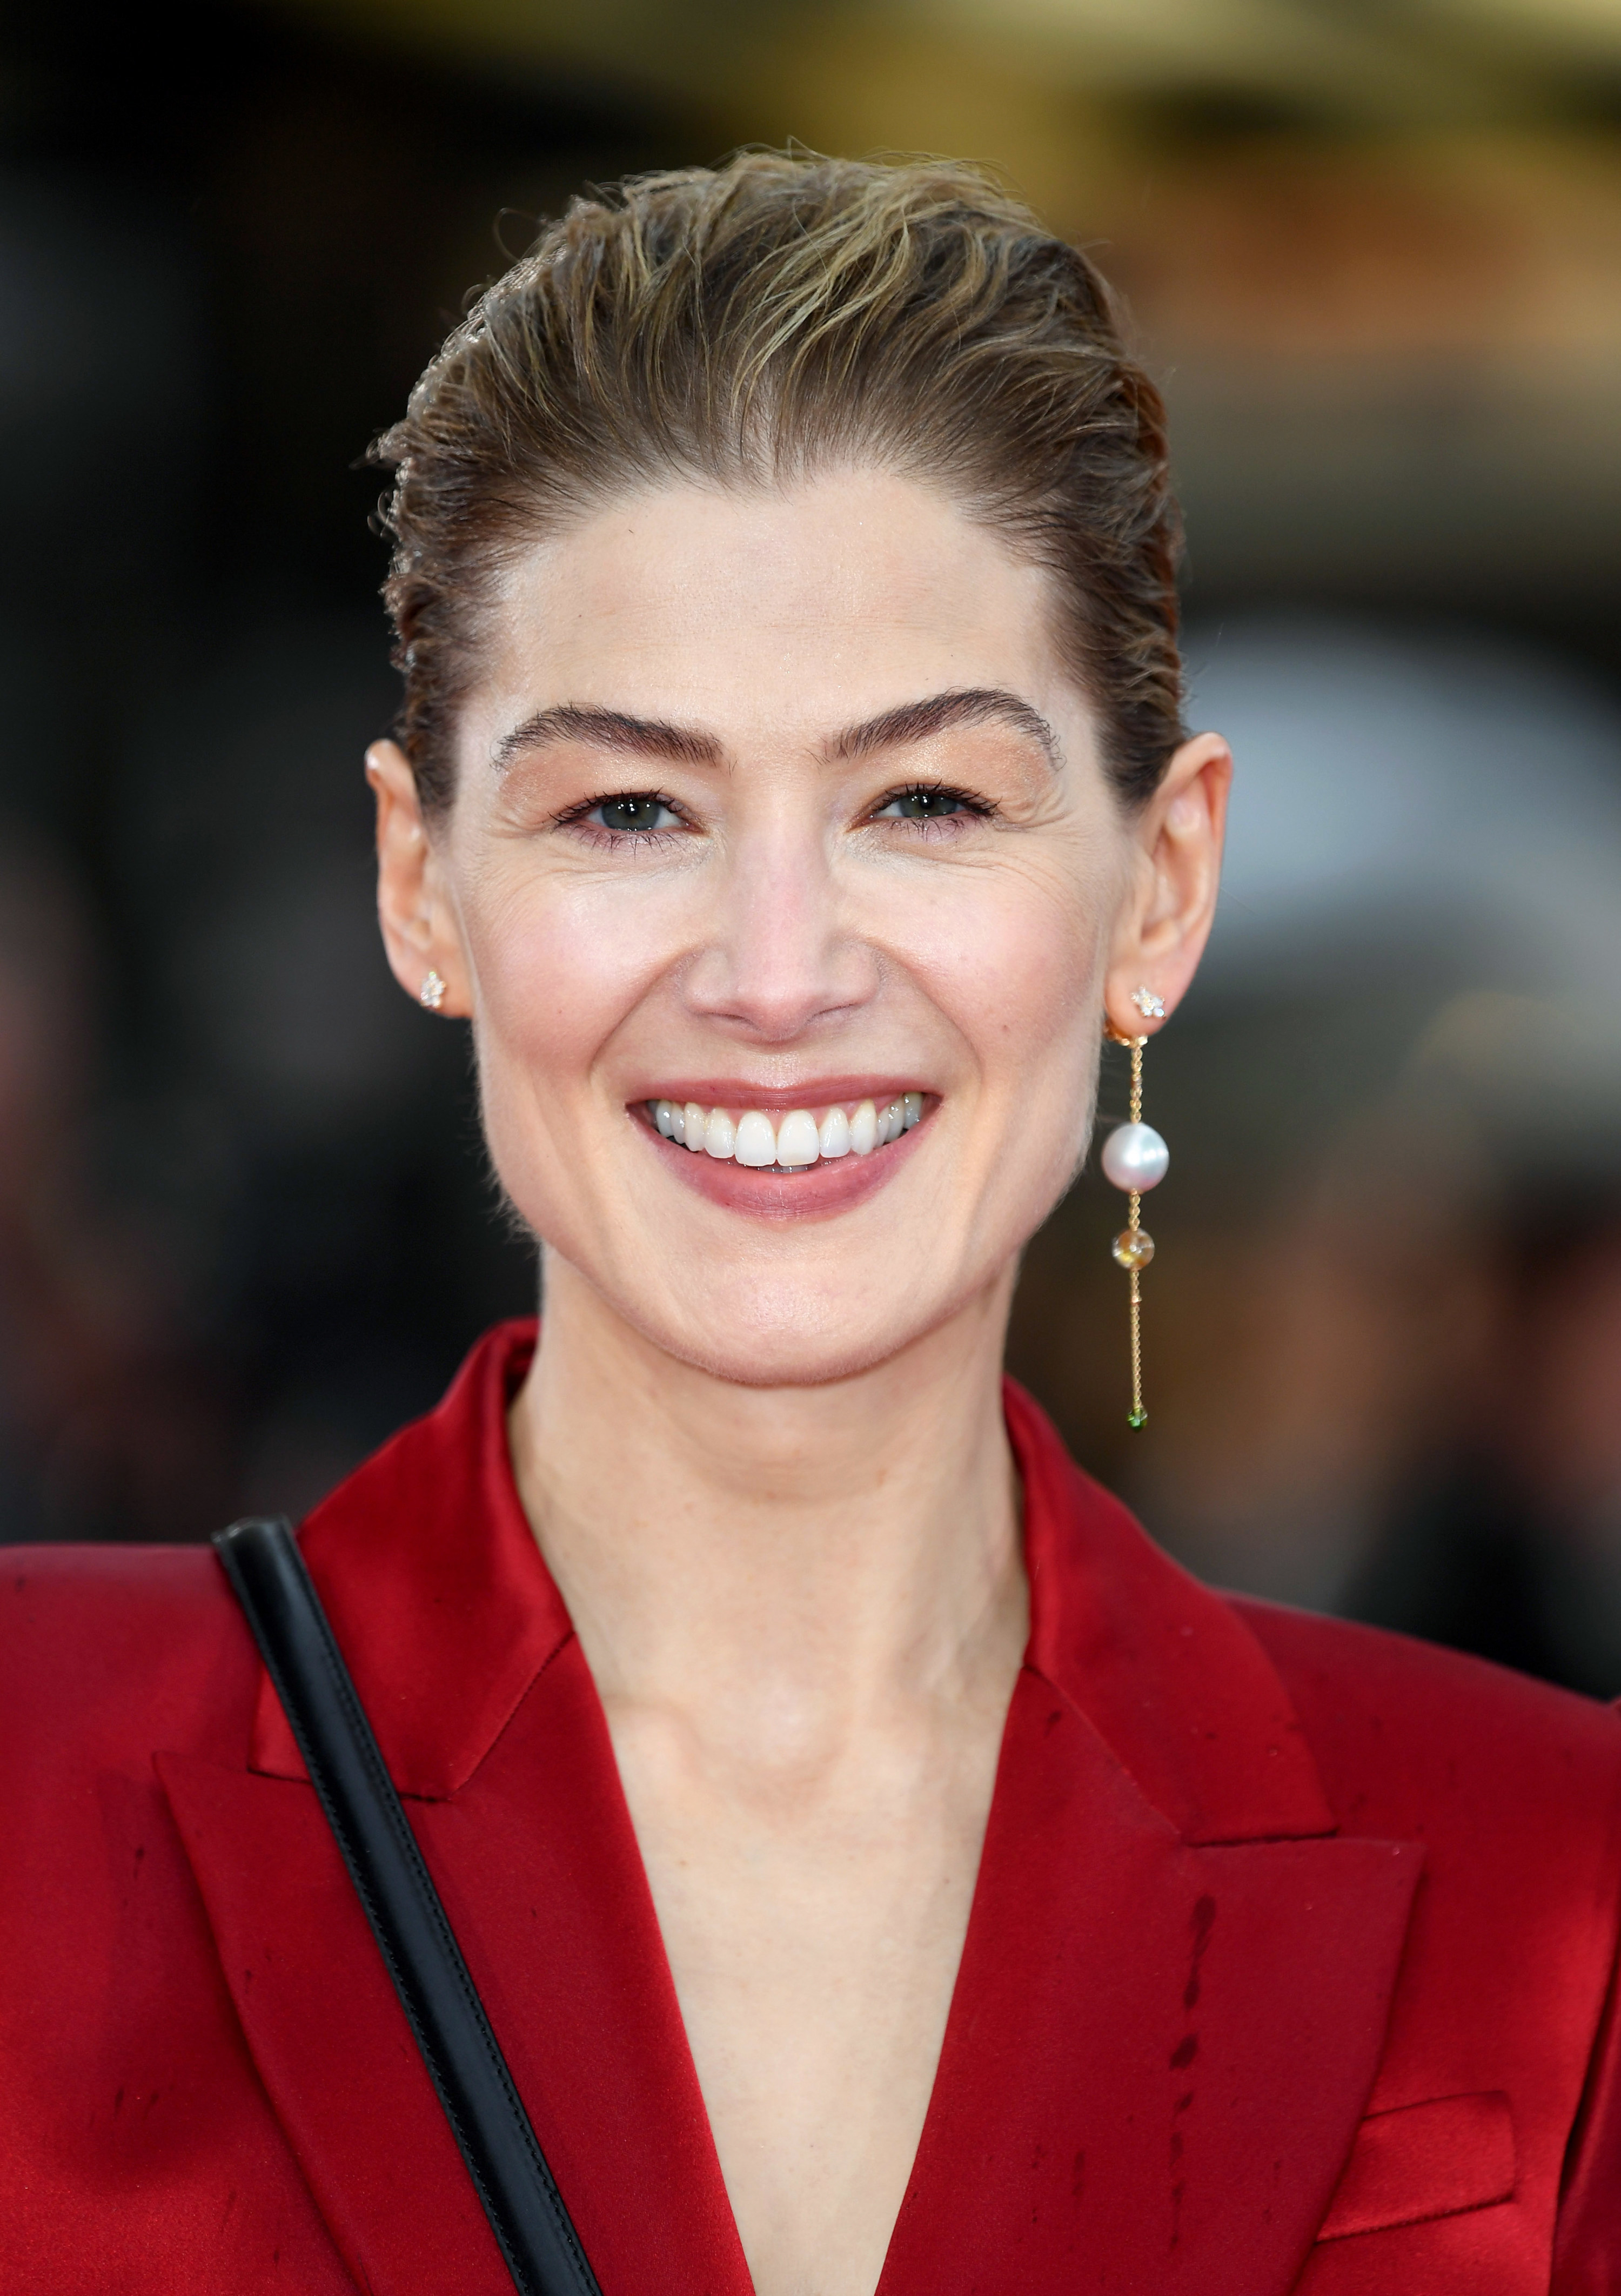 Rosamund pike at the premiere of Radioactive in London in March 2020